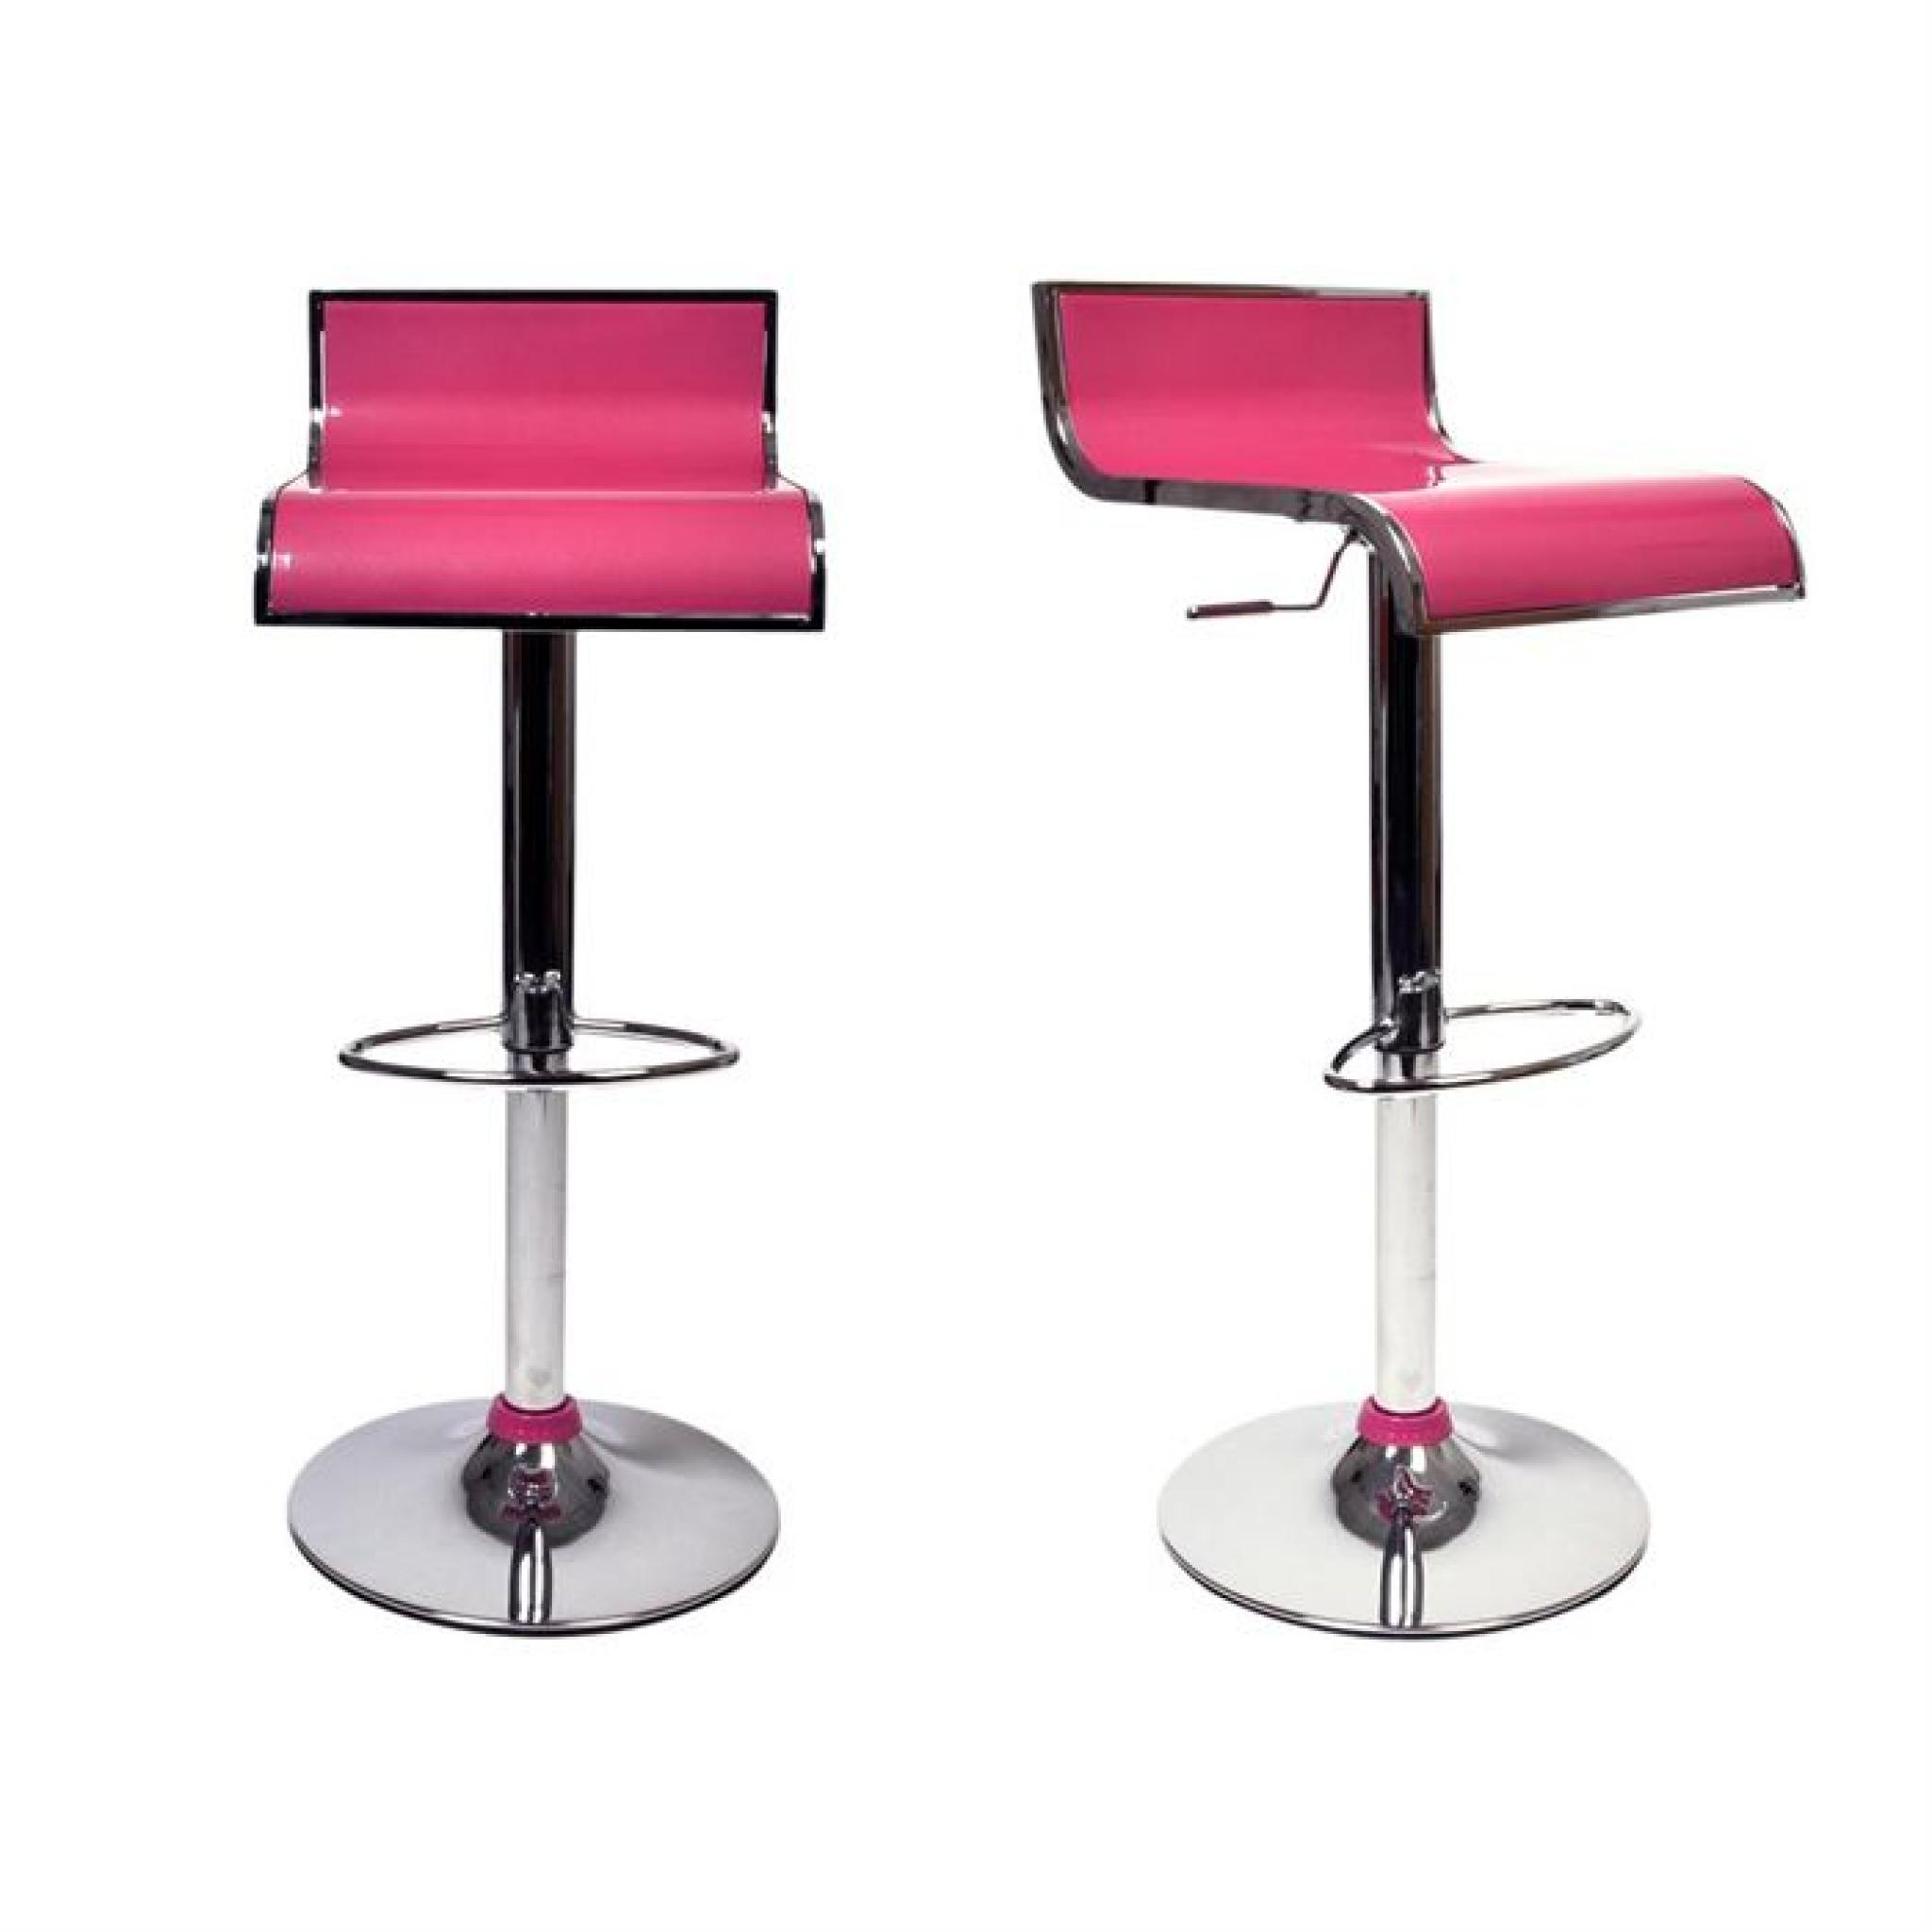 Tabourets de bar rose design waves lot de 2 achat vente tabouret de bar pas cher couleur for Tabouret bar couleur